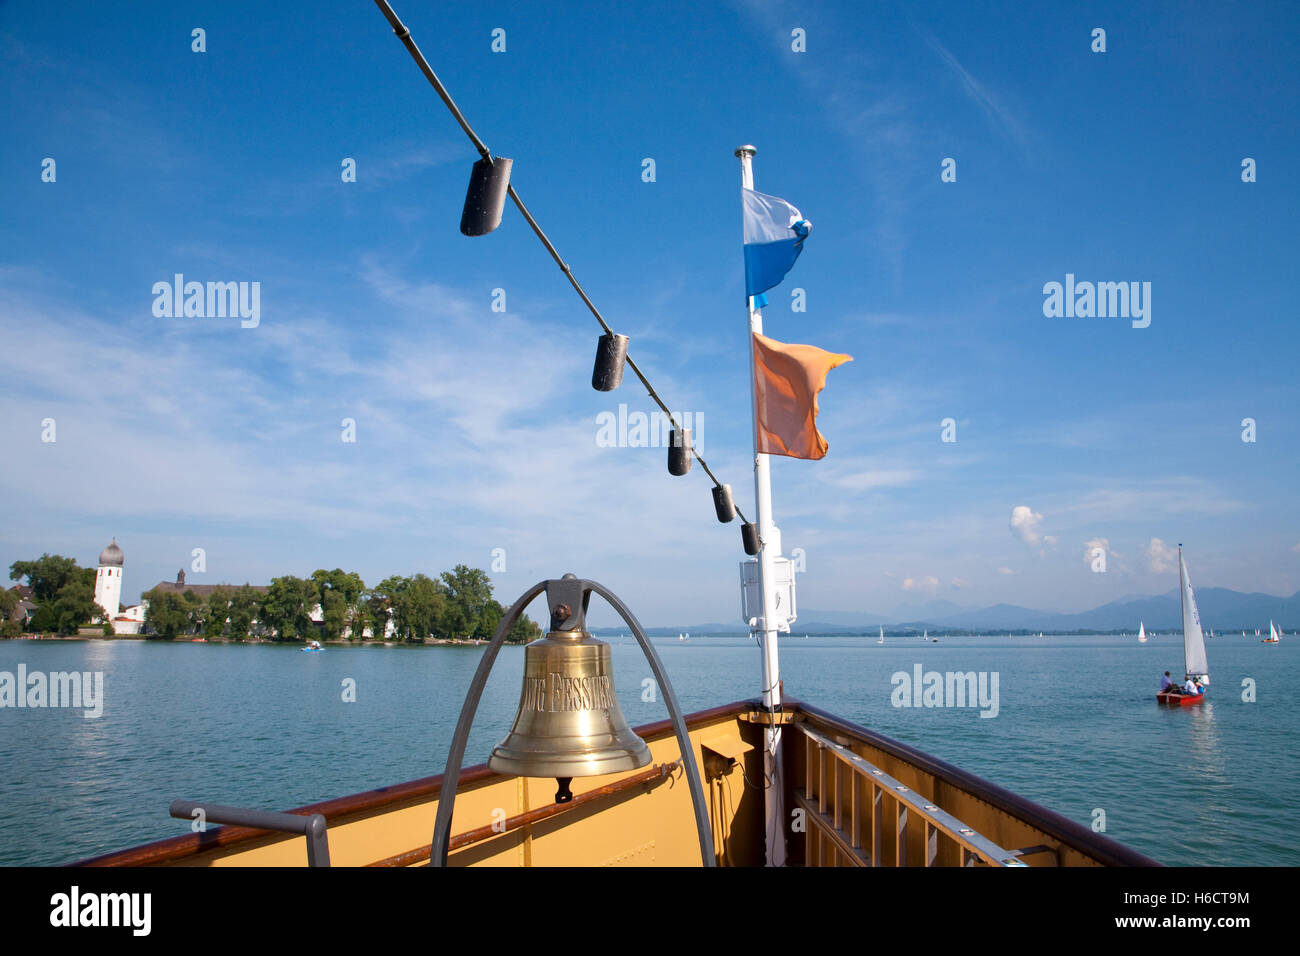 Monastery on Insel Frauenchiemsee island, bow of the ship Ludwig Fessler, ship's bell, sailboat, sailing, Chiemsee - Stock Image